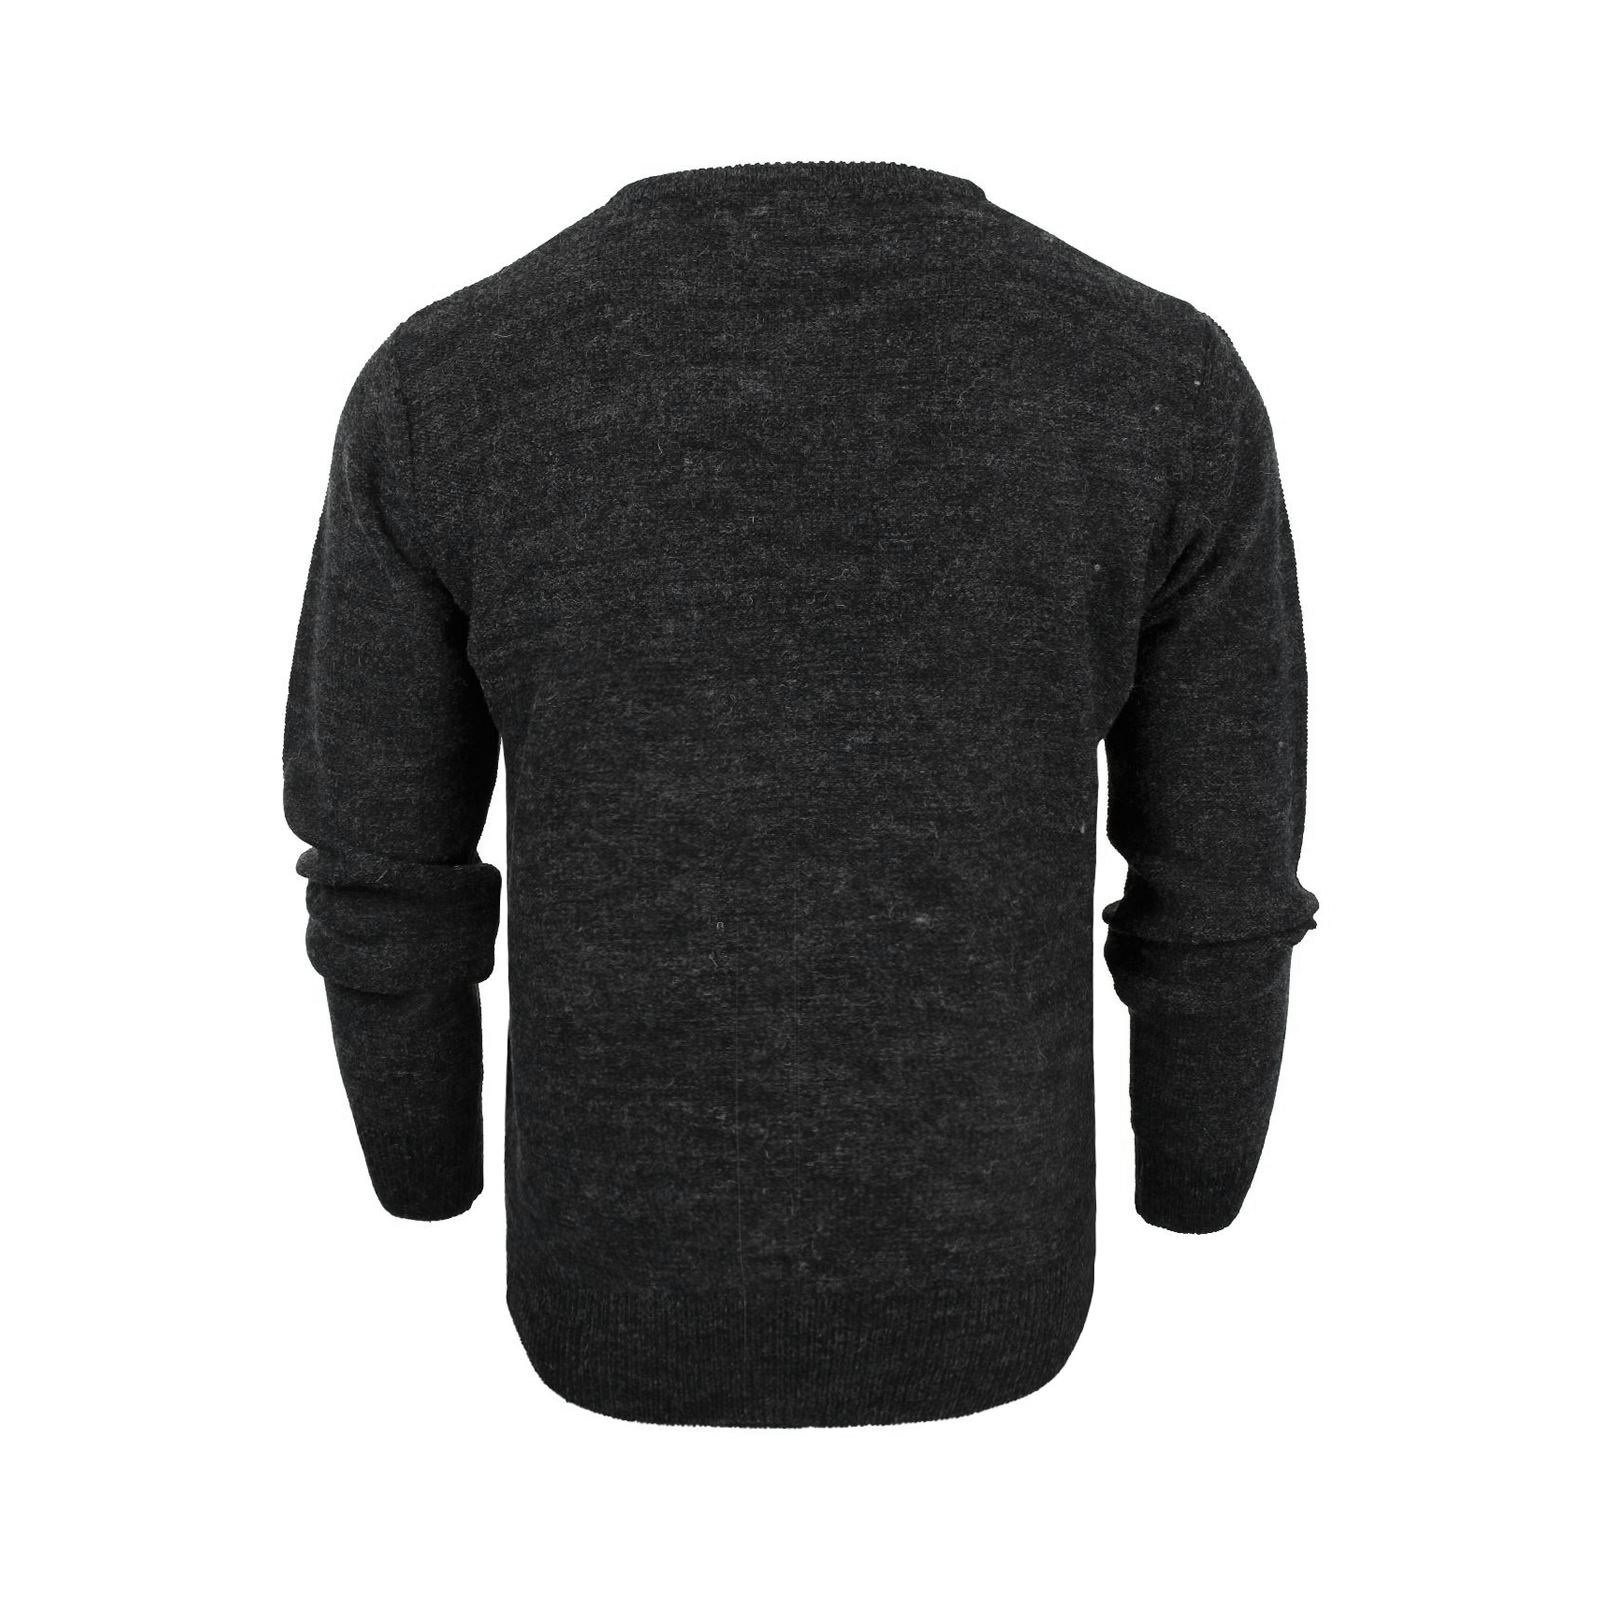 Mens-Jumper-Brave-Soul-Bayard-Wool-Mix-Crew-Neck-Knitted-Sweater thumbnail 5